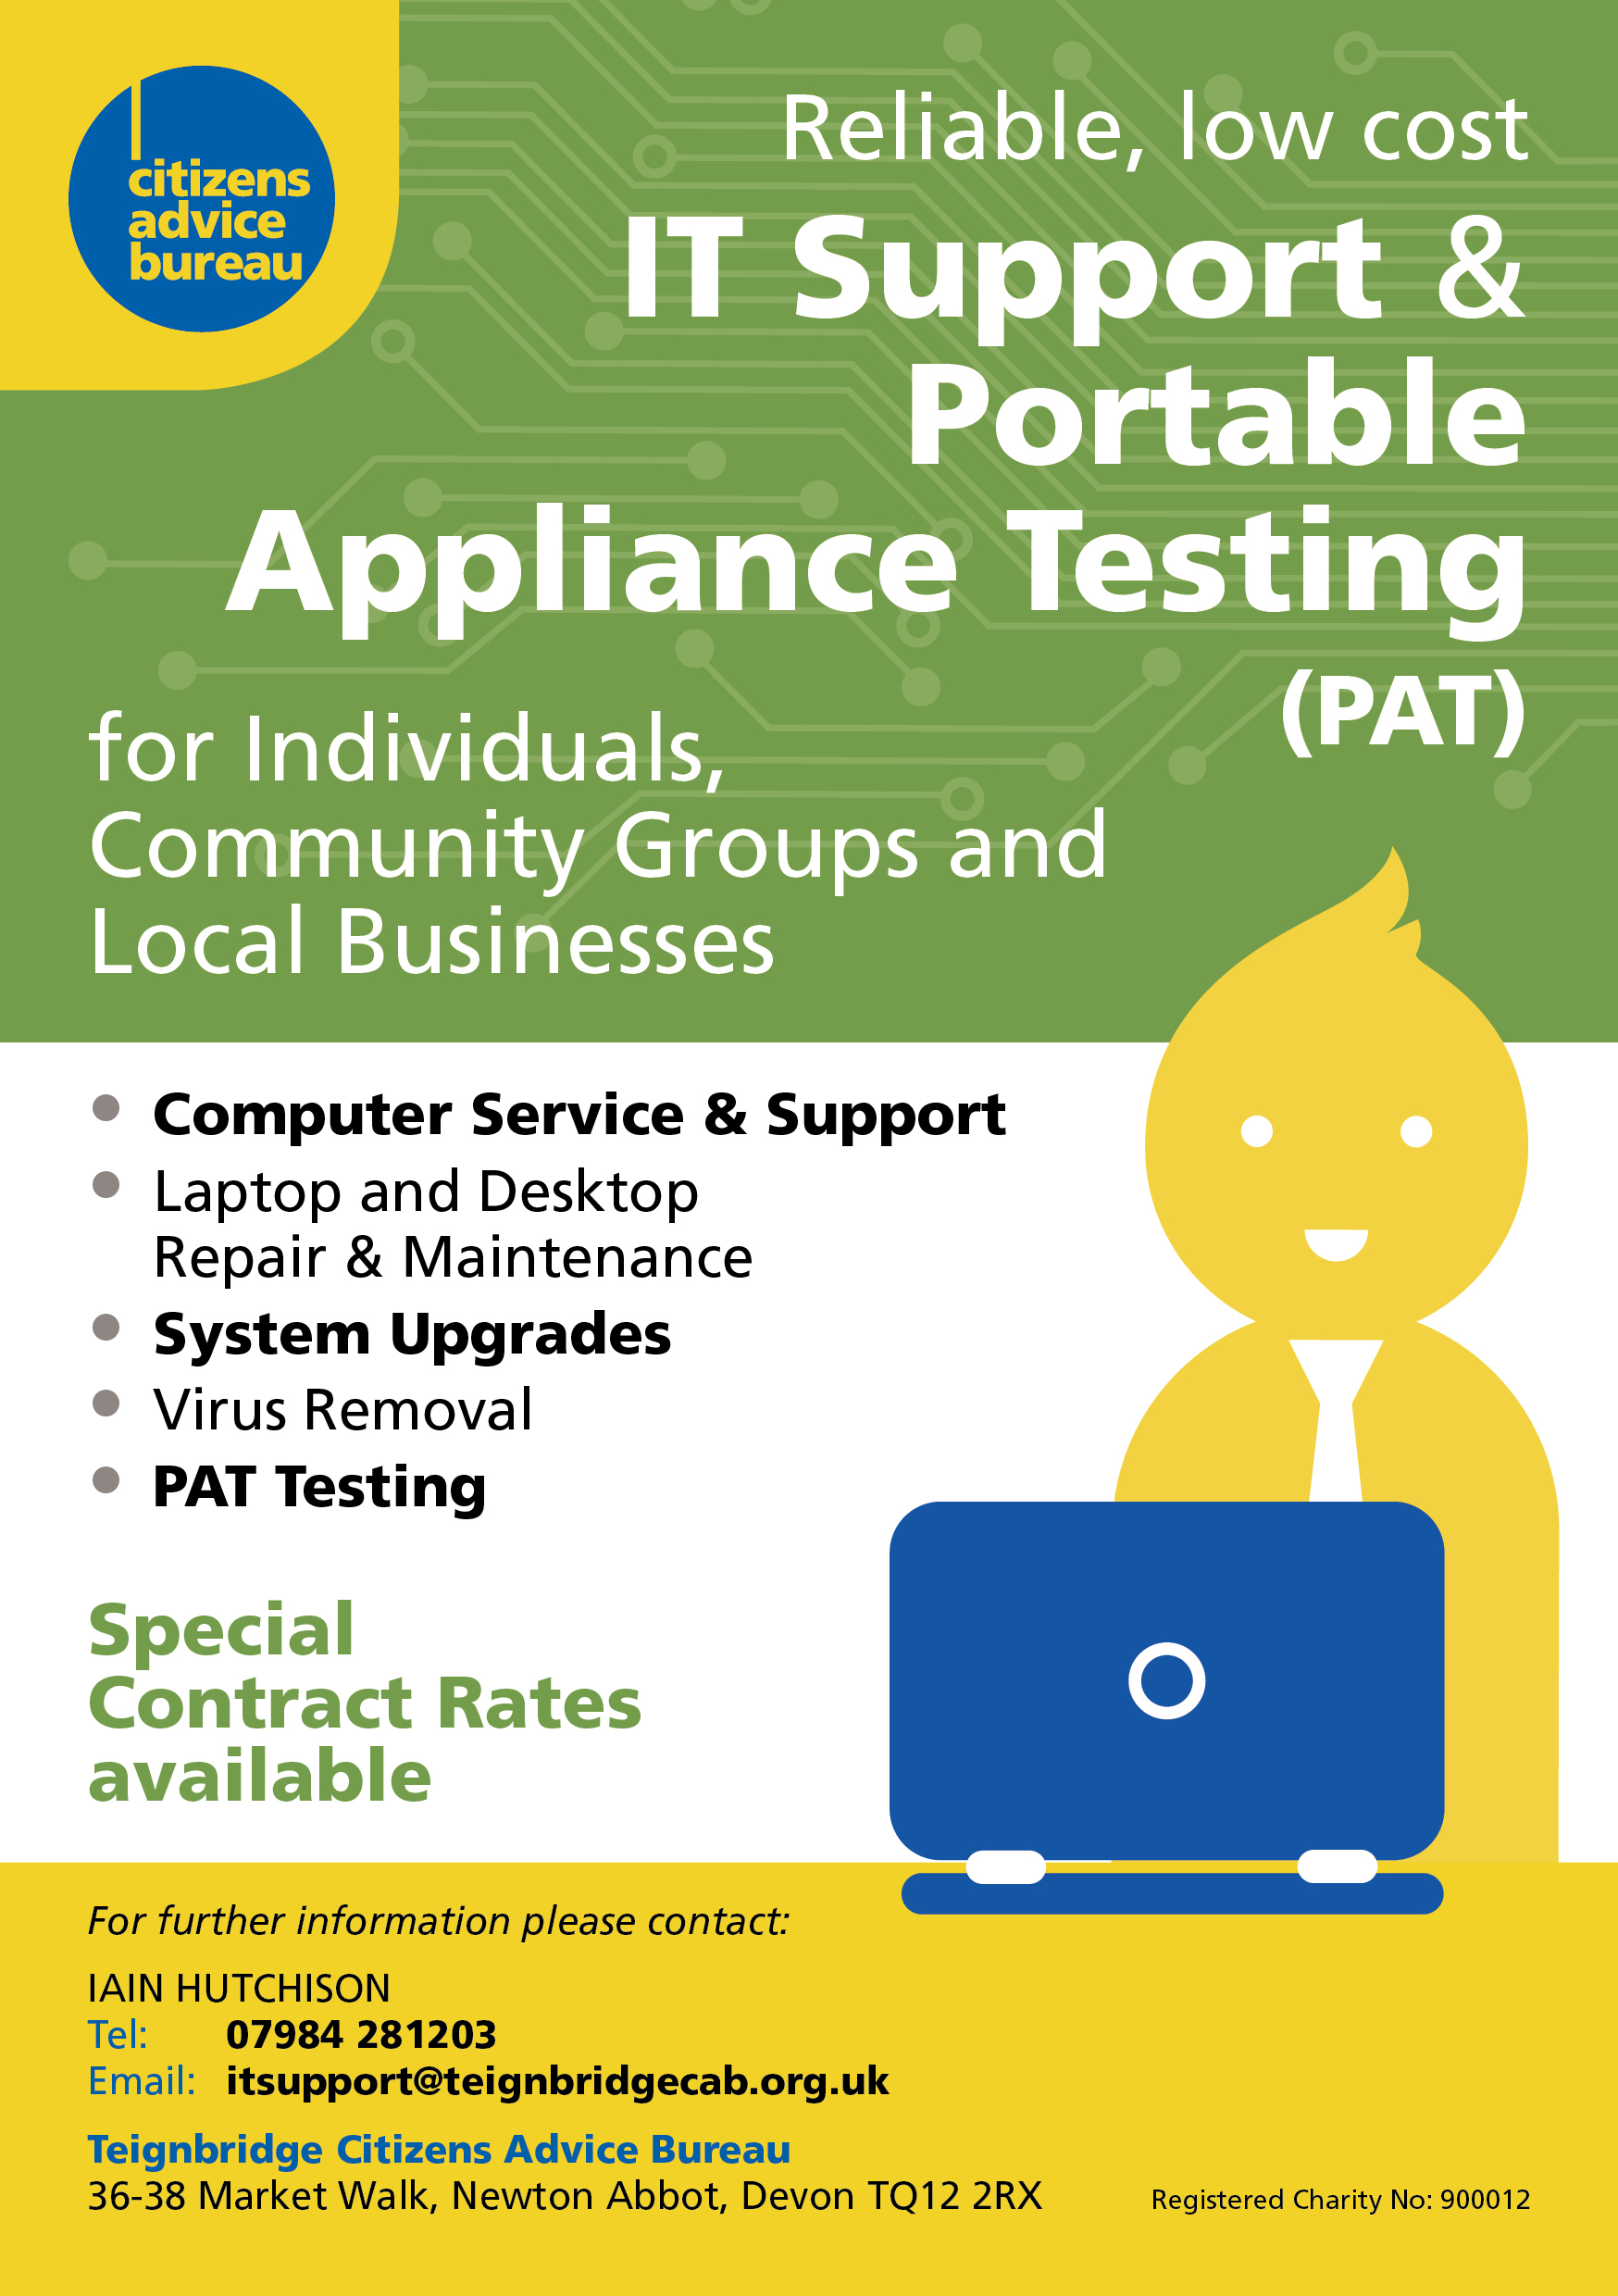 IT support for individuals, community groups and local businesses. Computer service and support, laptop and desktop repair and maintenance, system upgrades, virus removal, PAT testing. Special contract rates available. For further information contact Iain Hutchison: 07984 281203, itsupport@teignbridgecab.org.uk